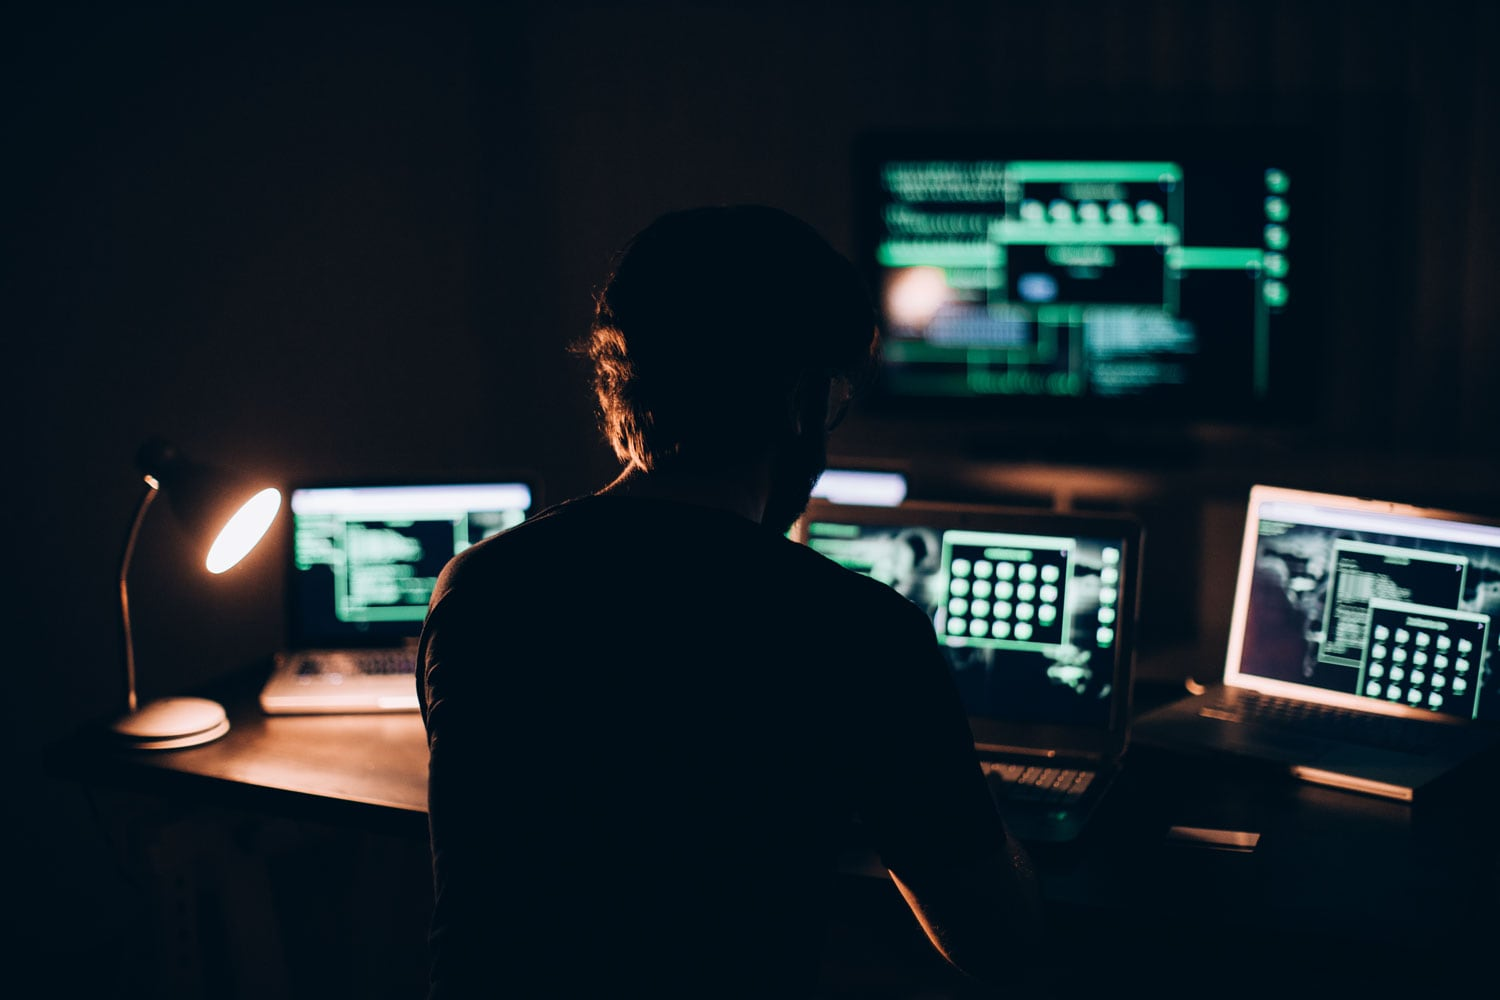 man sitting in front of computers in dark room